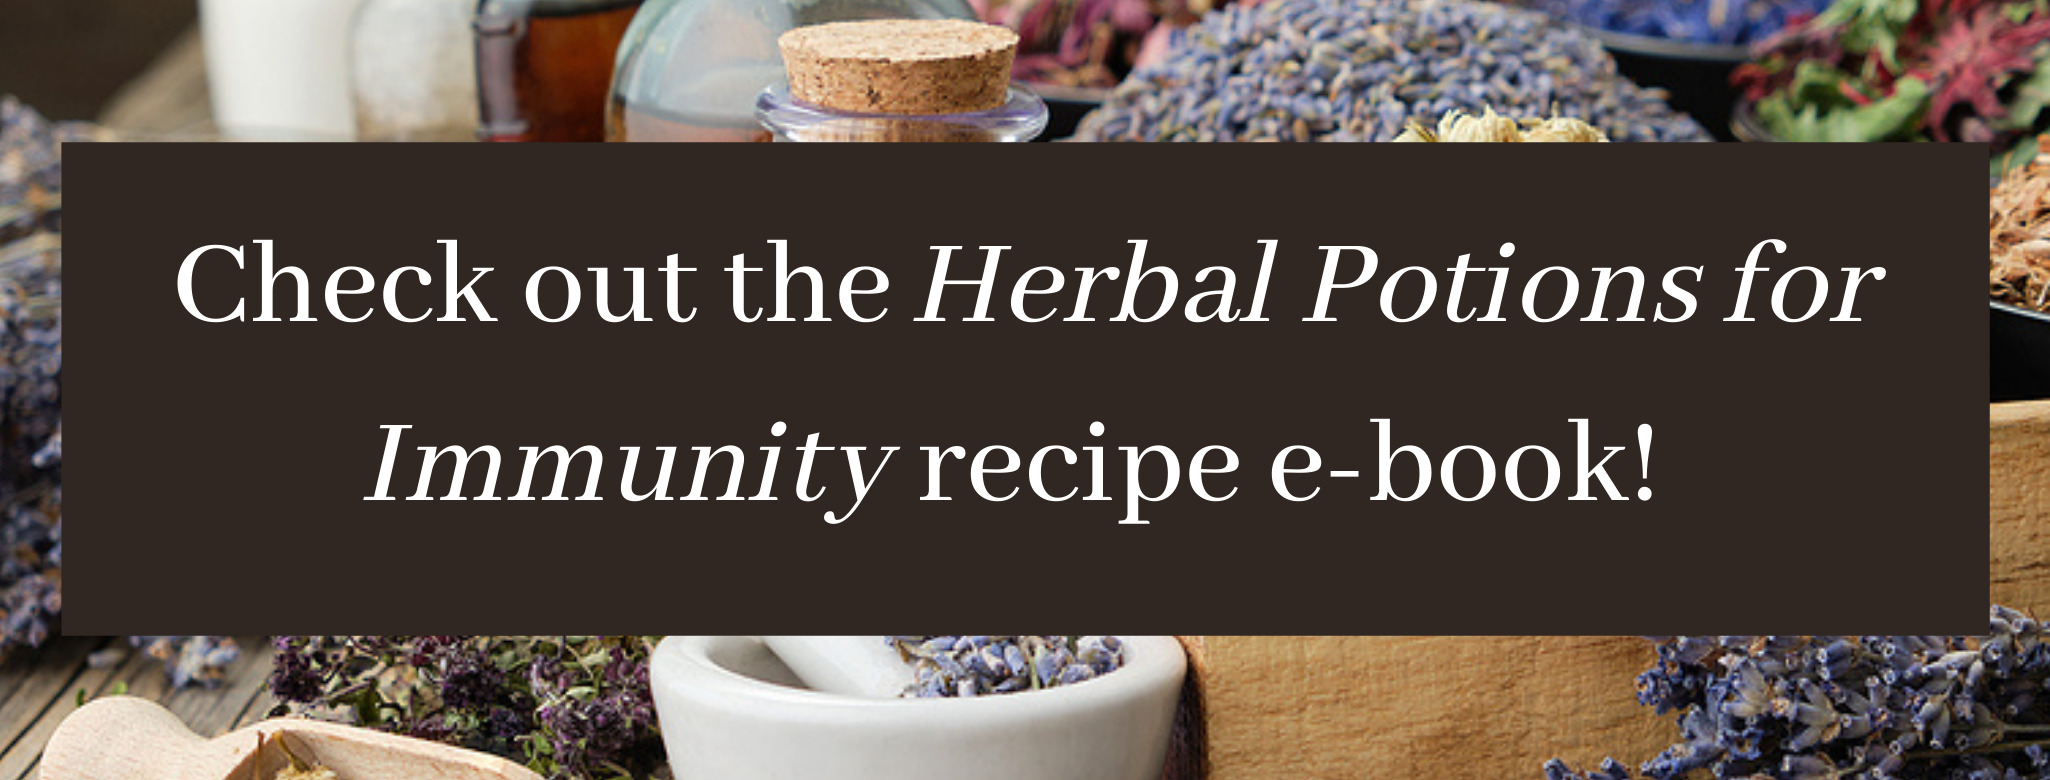 Link to Herbs for Immunity e-book